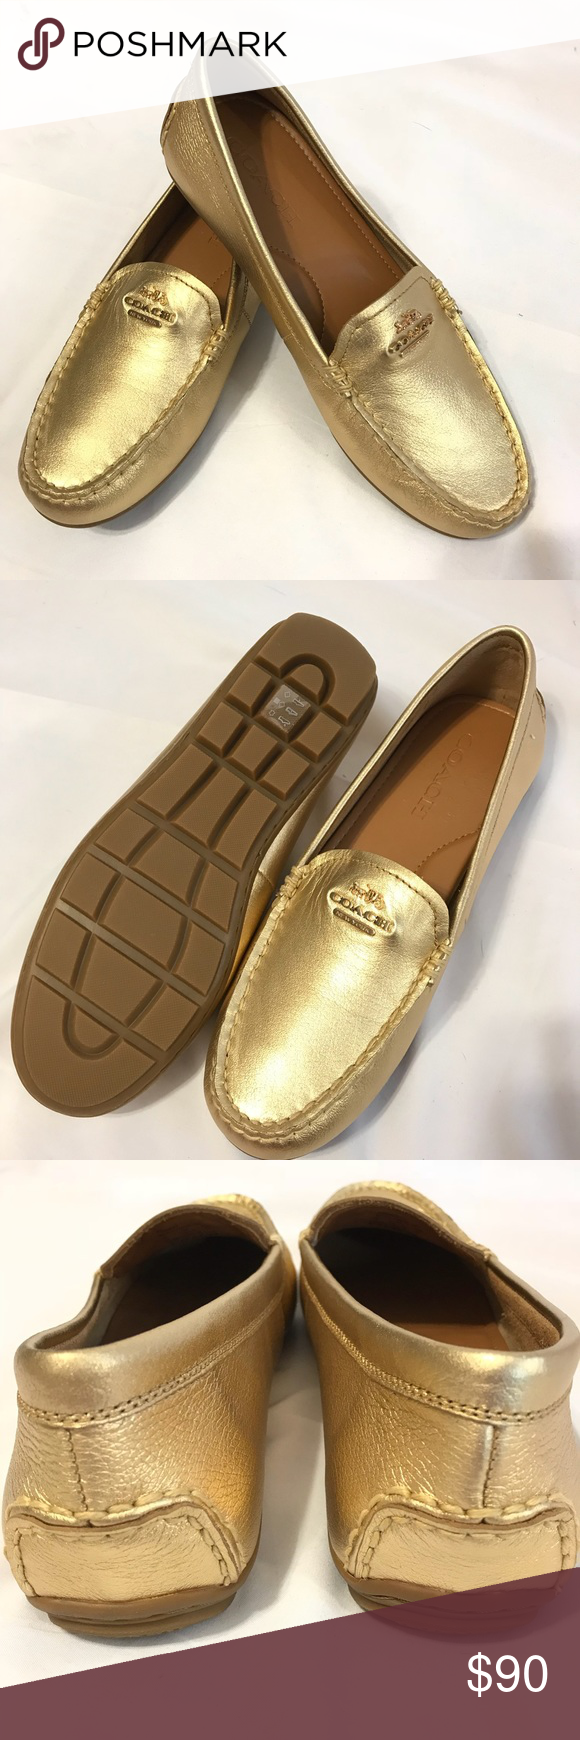 b37c8b9696d Coach Mary Lock Up Gold Driving Shoes Coach  Mary Lock Up